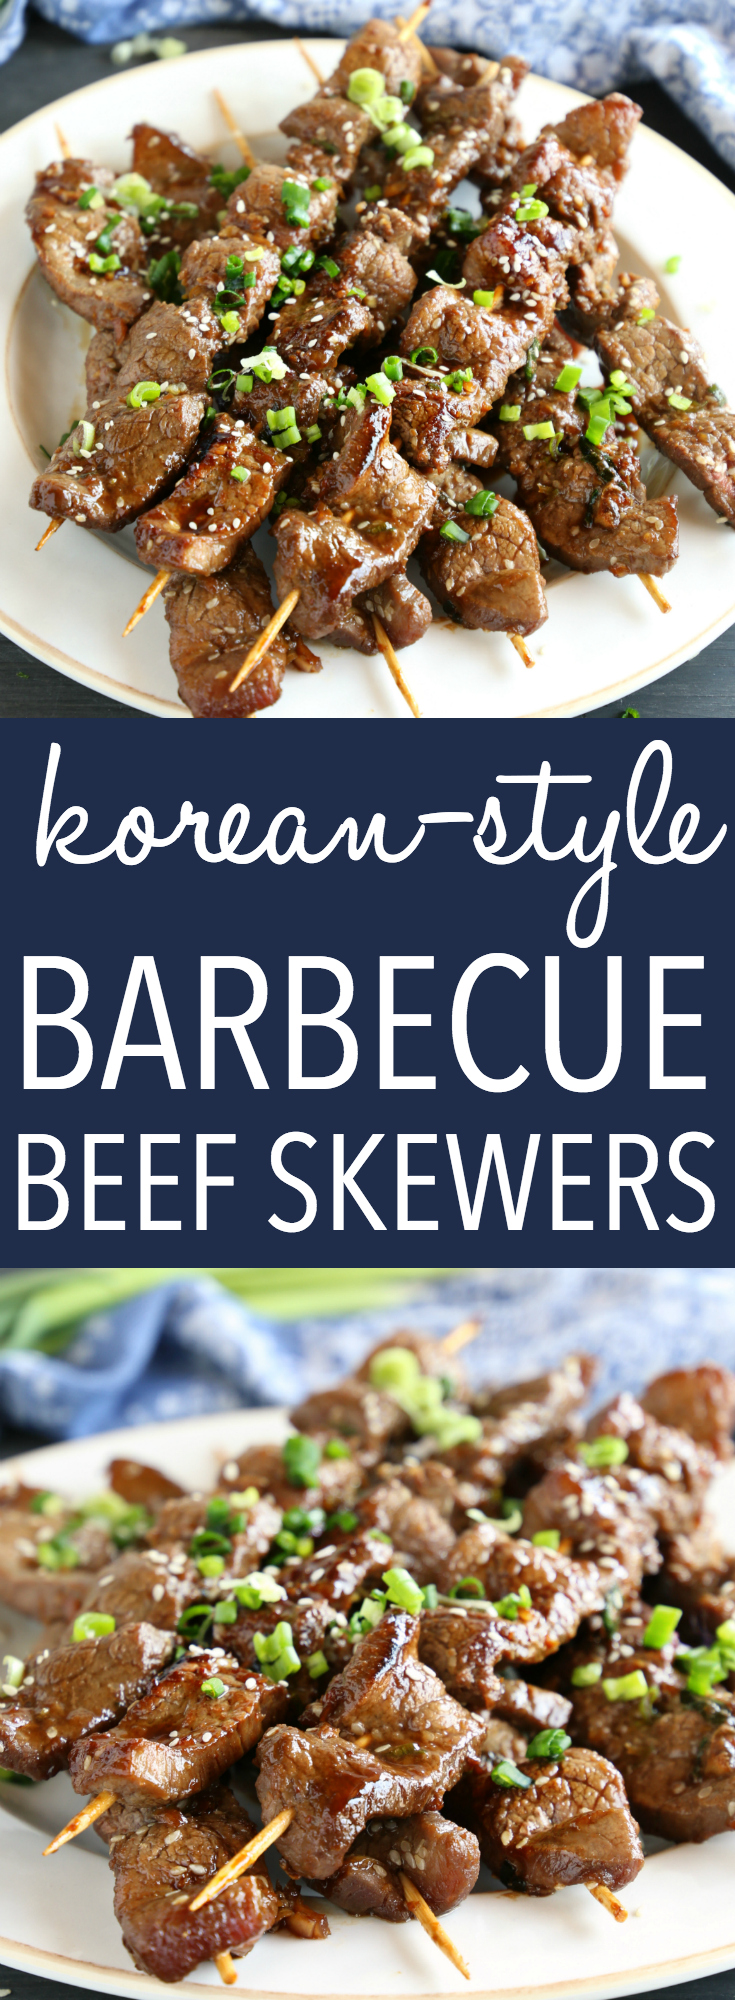 These Best Ever Korean Barbecue Beef Skewers are made with a super simple marinade and grilled to perfection with that classic Korean Barbecue-inspired flavour!  Recipe from thebusybaker.ca! #koreanbbq #koreanbarbecue #easykoreanbarbecue #besteverkoreanbarbecue #besteverkoreanbeef #koreanbeef #easykoreanbeef